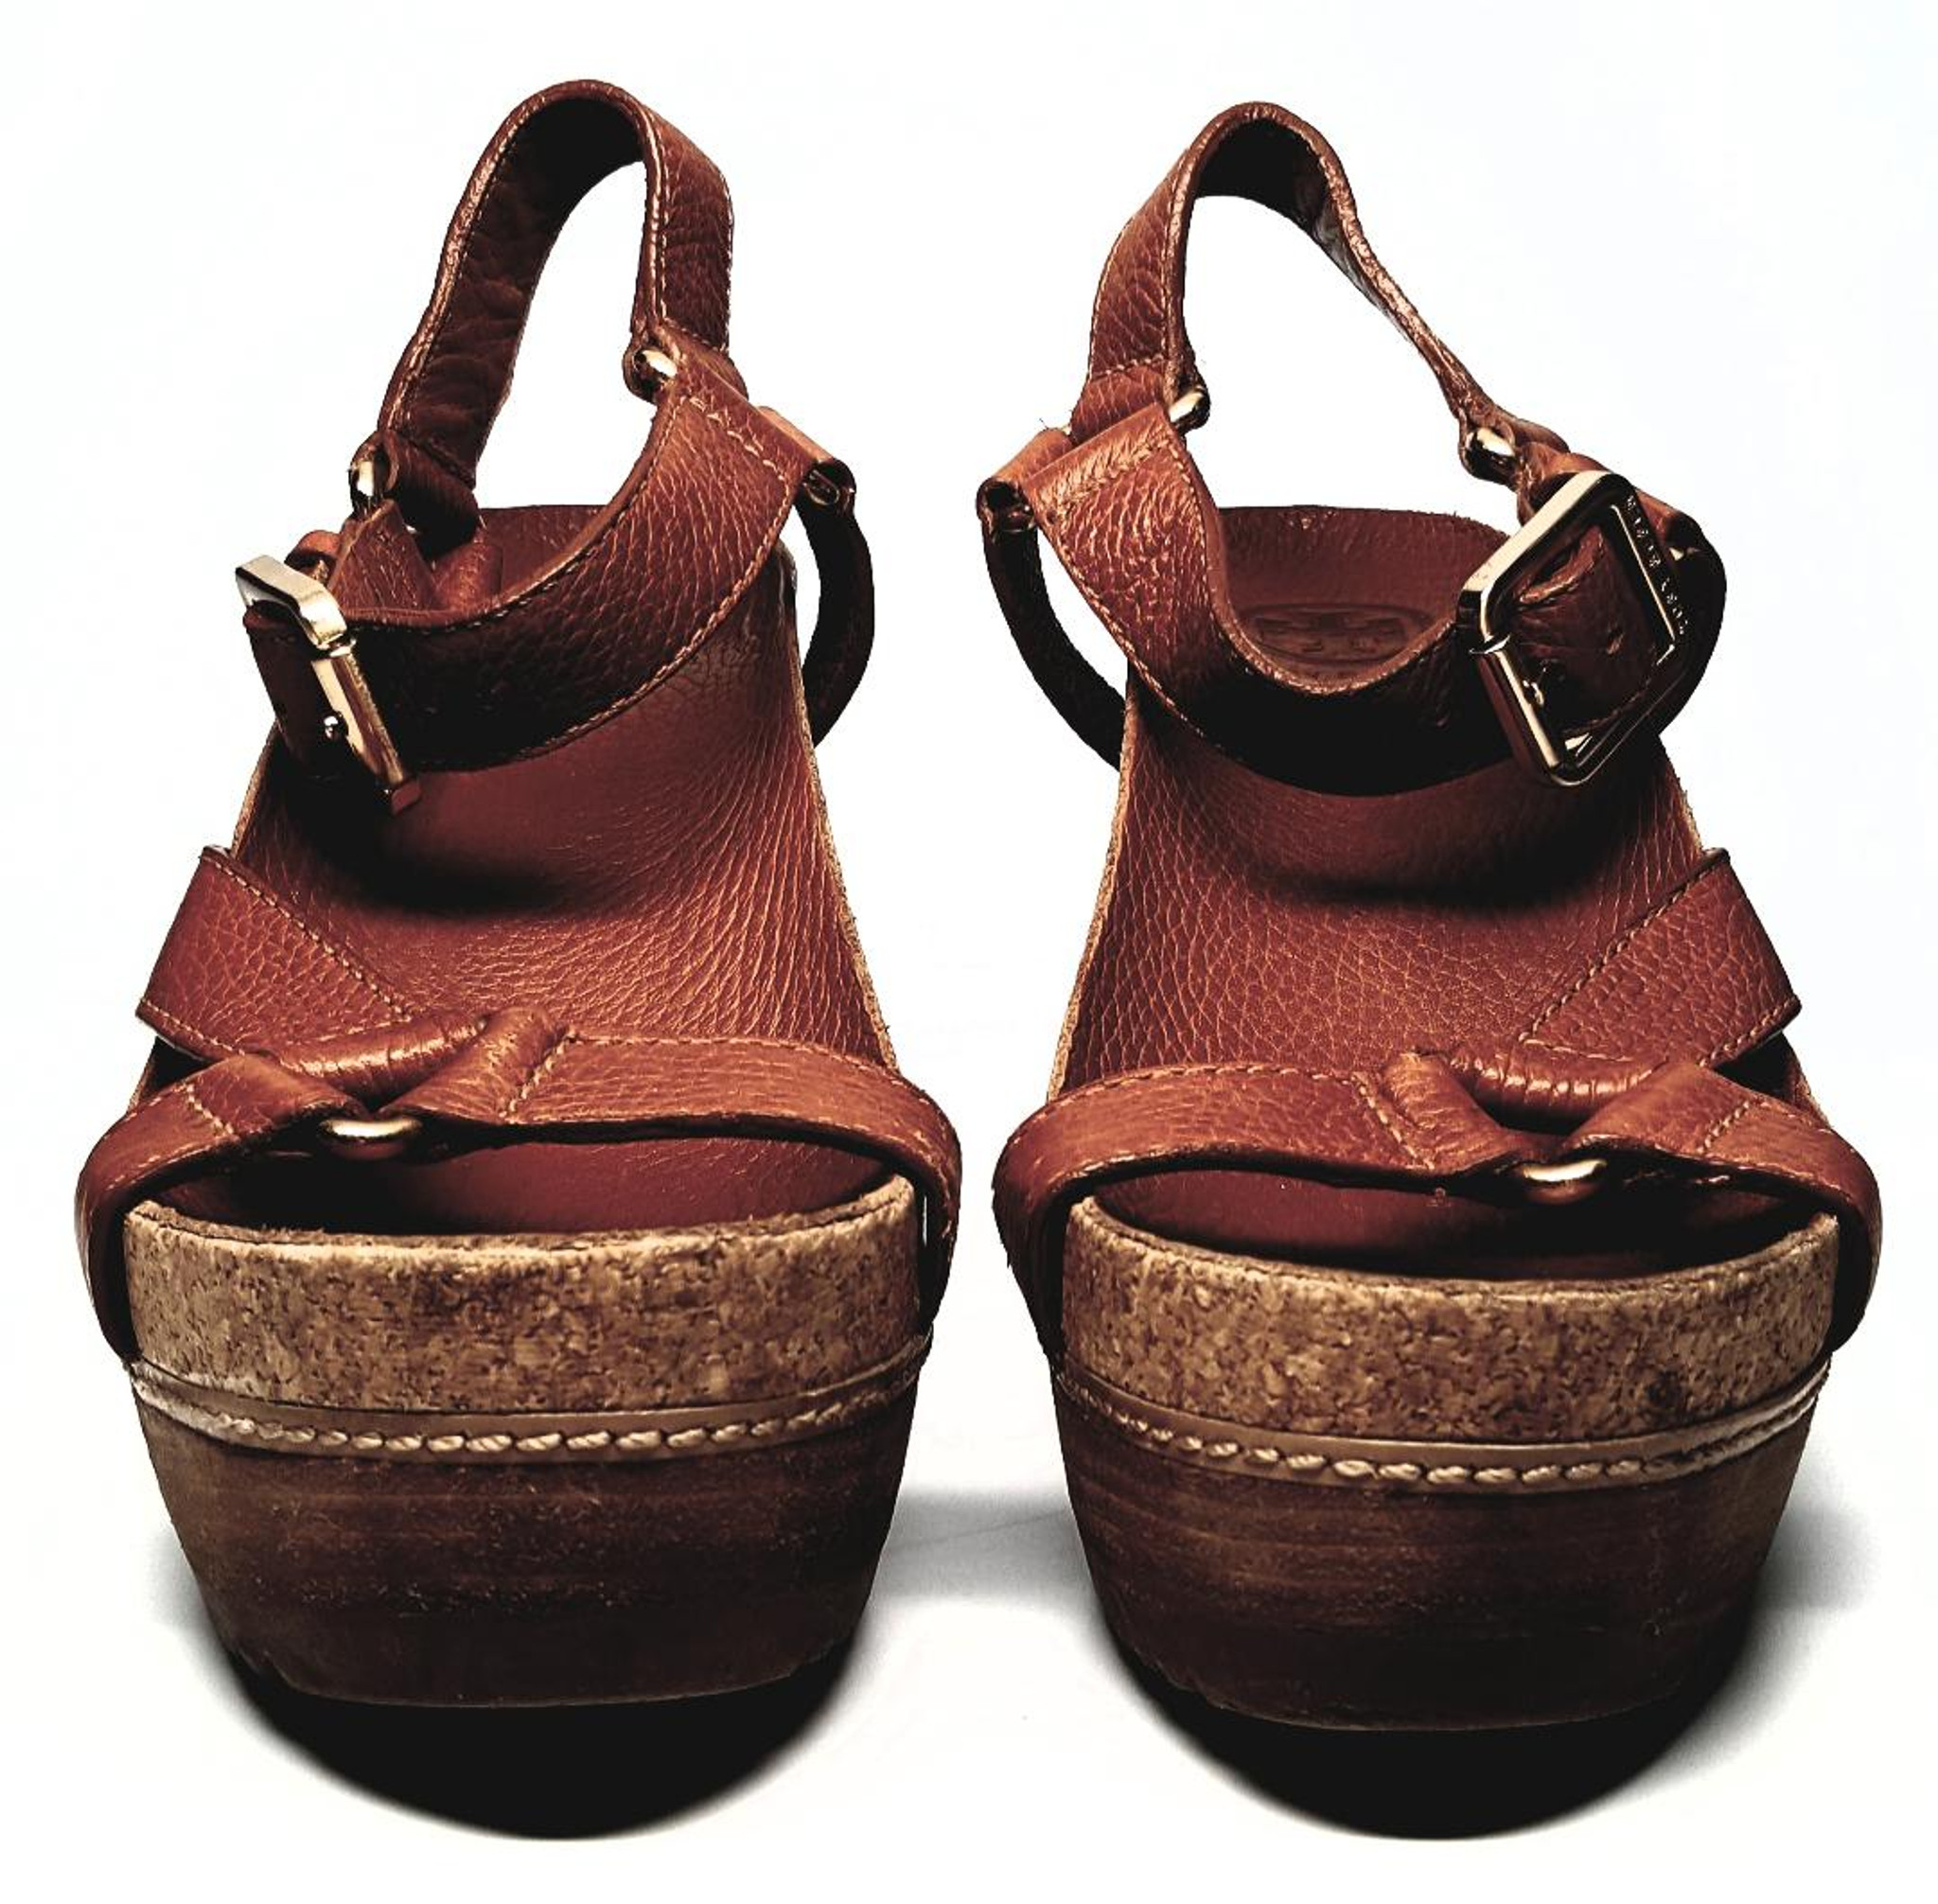 1c397ab9fb2 ... Size 7M. Caramel-Colored Soft Pebbled Leather High Wedge Mary Jane  Sandals by Tory Burch - US ...